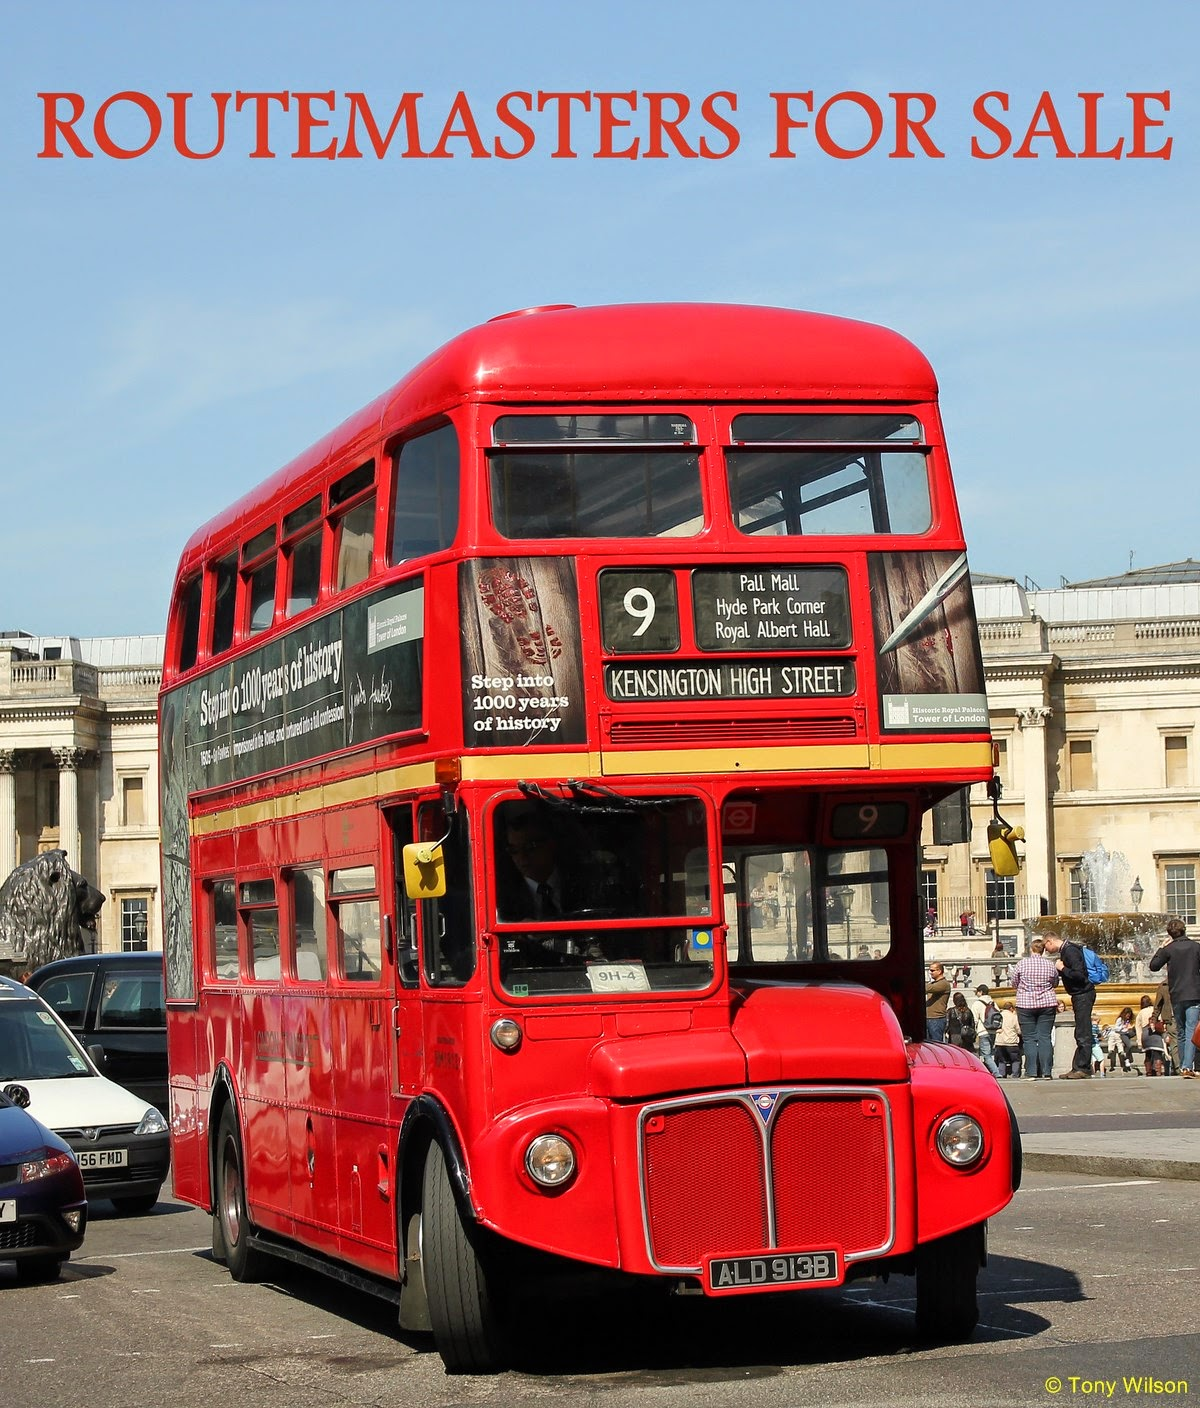 FOCUS TRANSPORT: 'ERE GUV, WANNA BUY A GENUINE LONDON BUS?